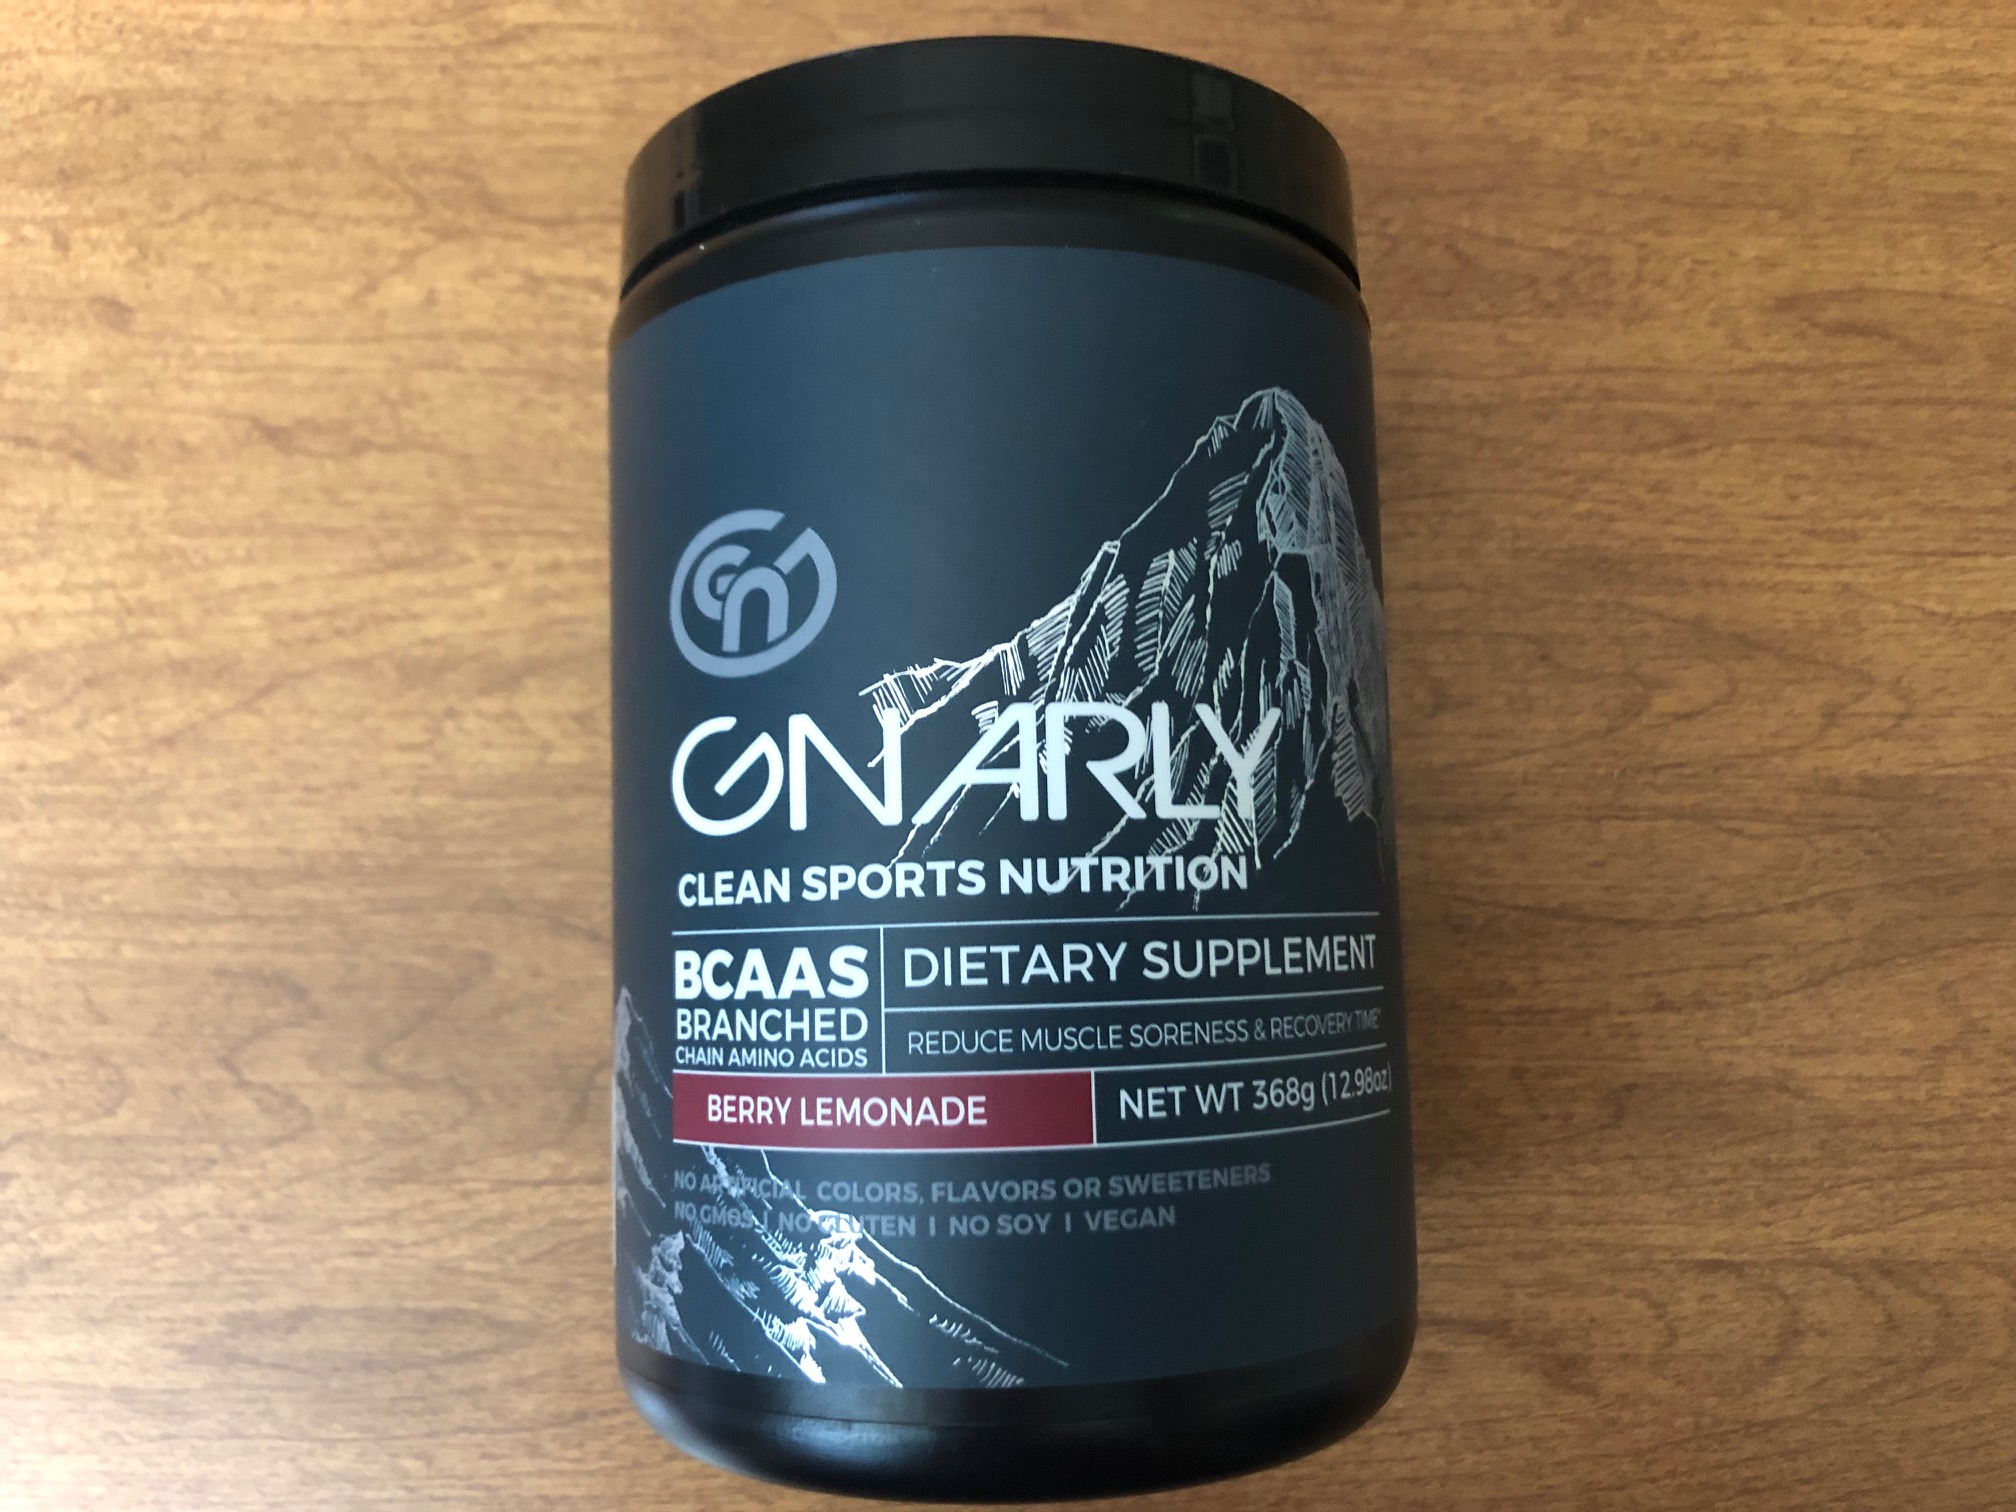 Gnarly Nutrition Review